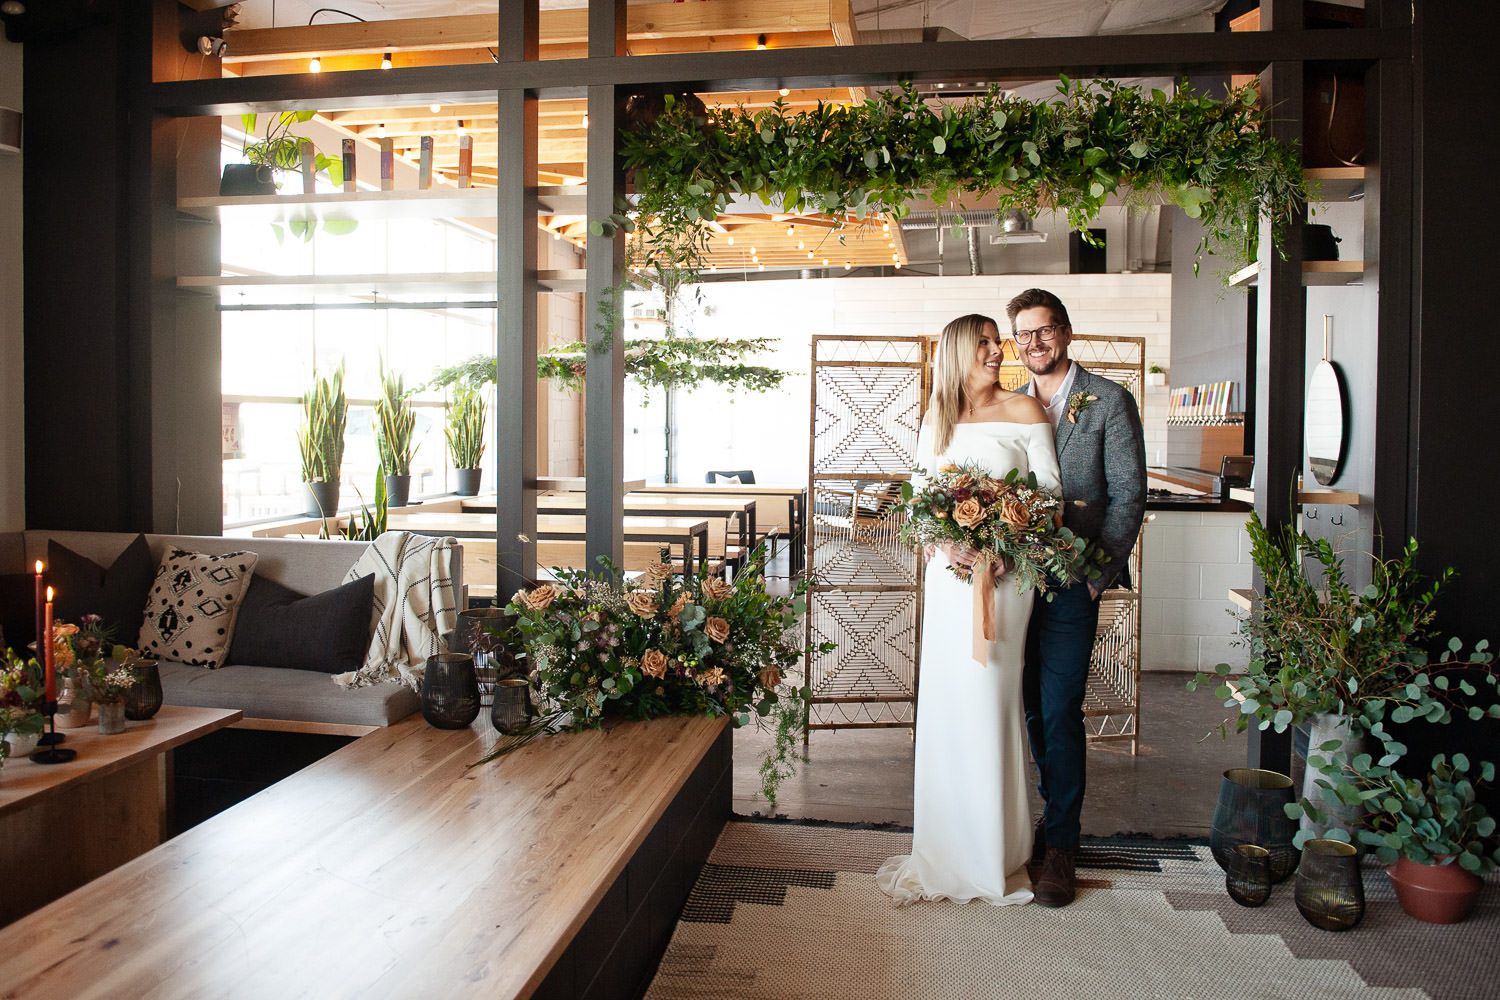 The ceremony space at an Annex Ale Project wedding captured by Tara Whittaker Photography